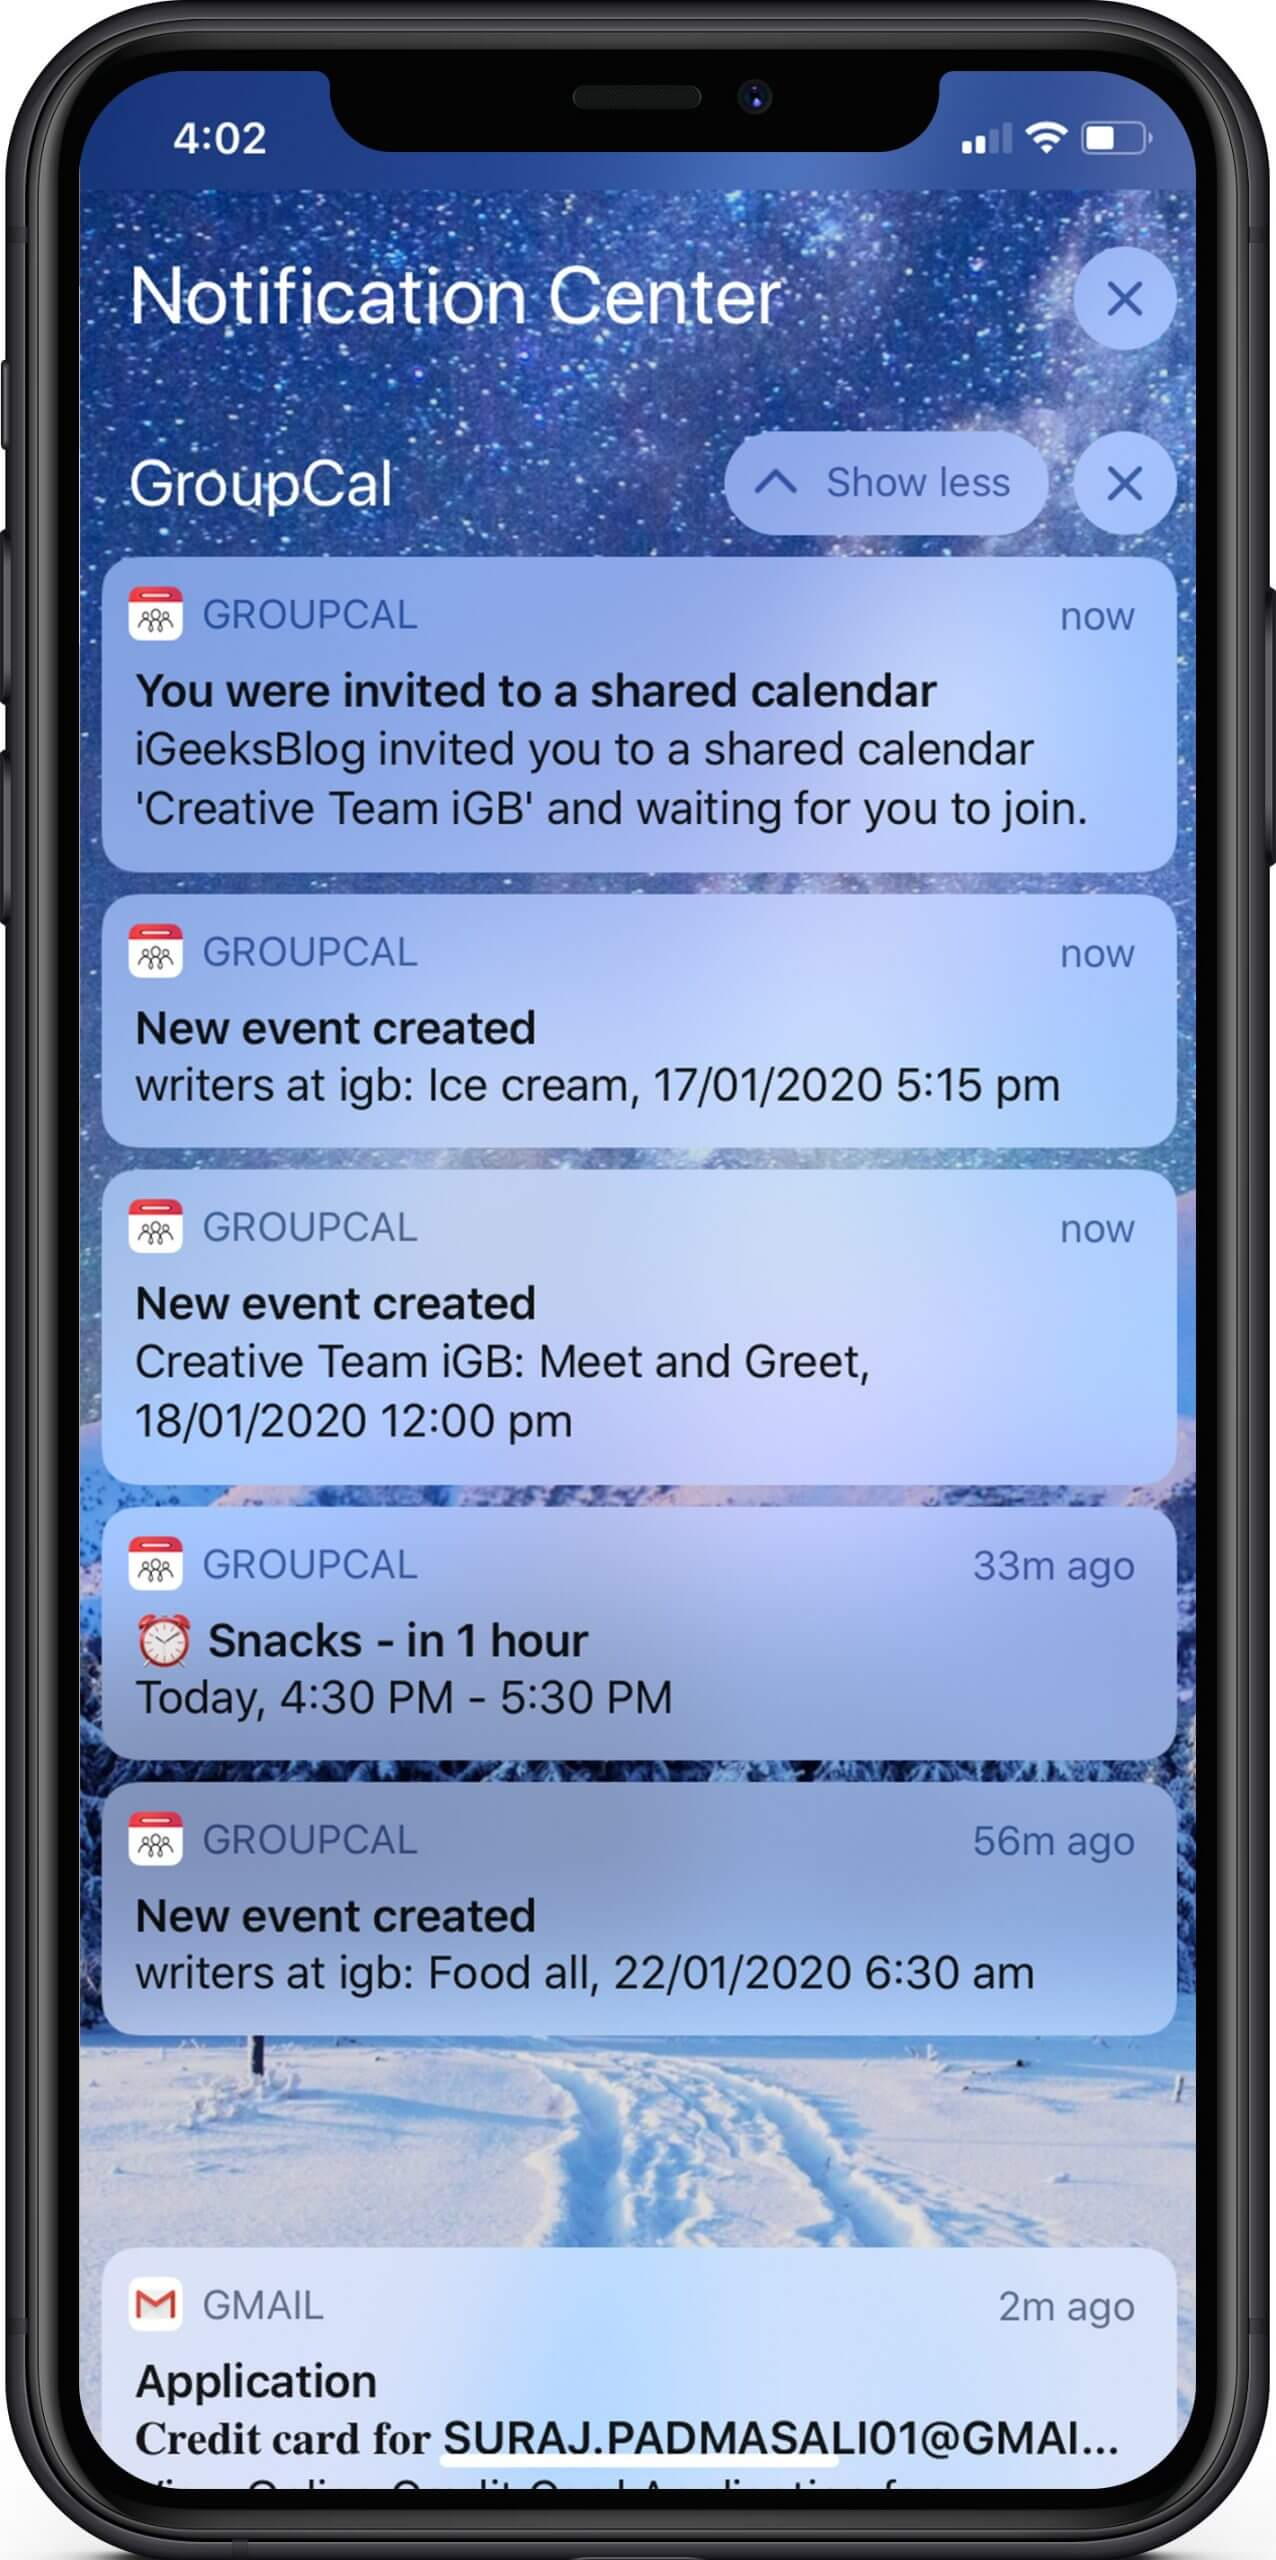 Get Notification of Event in Real Time in GroupCal App on iPhone